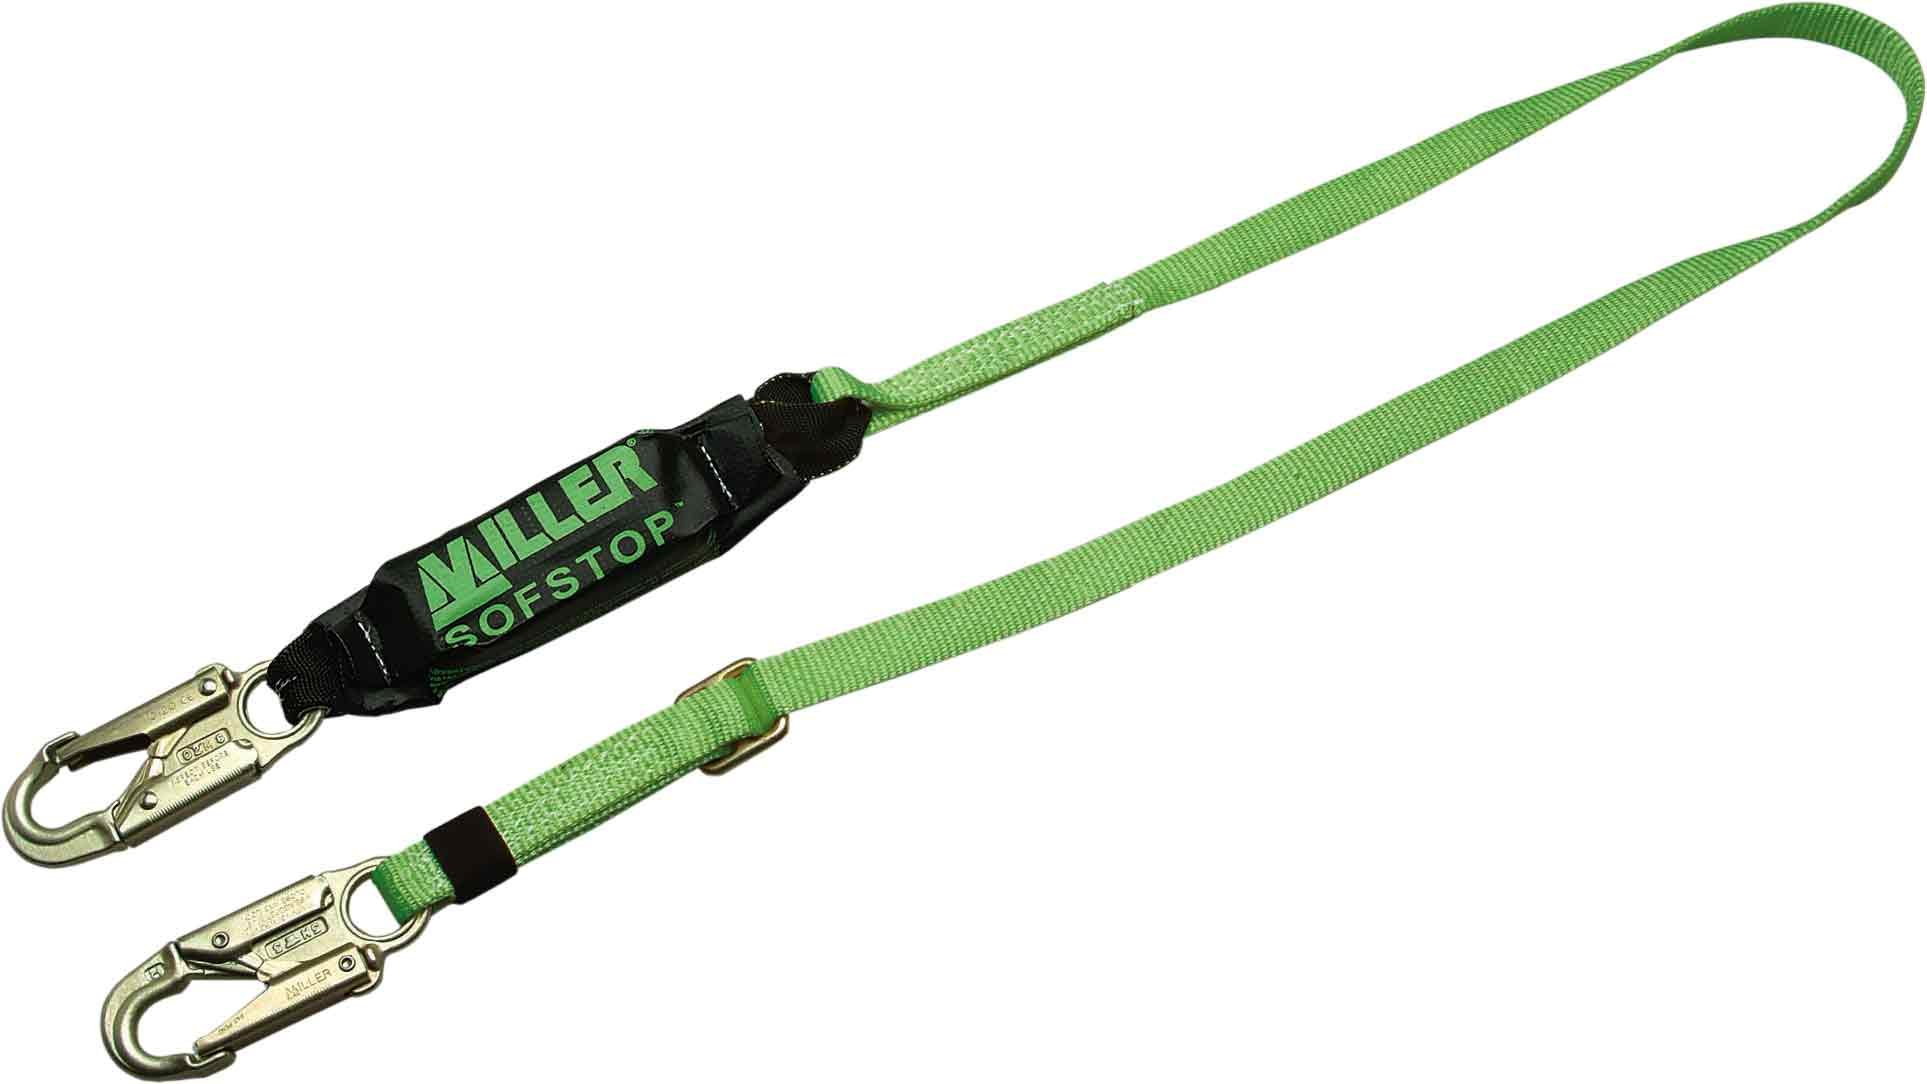 Miller by Honeywell 910TWLS/20FTGK 20-Feet HP Adjustable Web Lanyard with SofStop Shock Absorber and Two Locking Snap Hooks